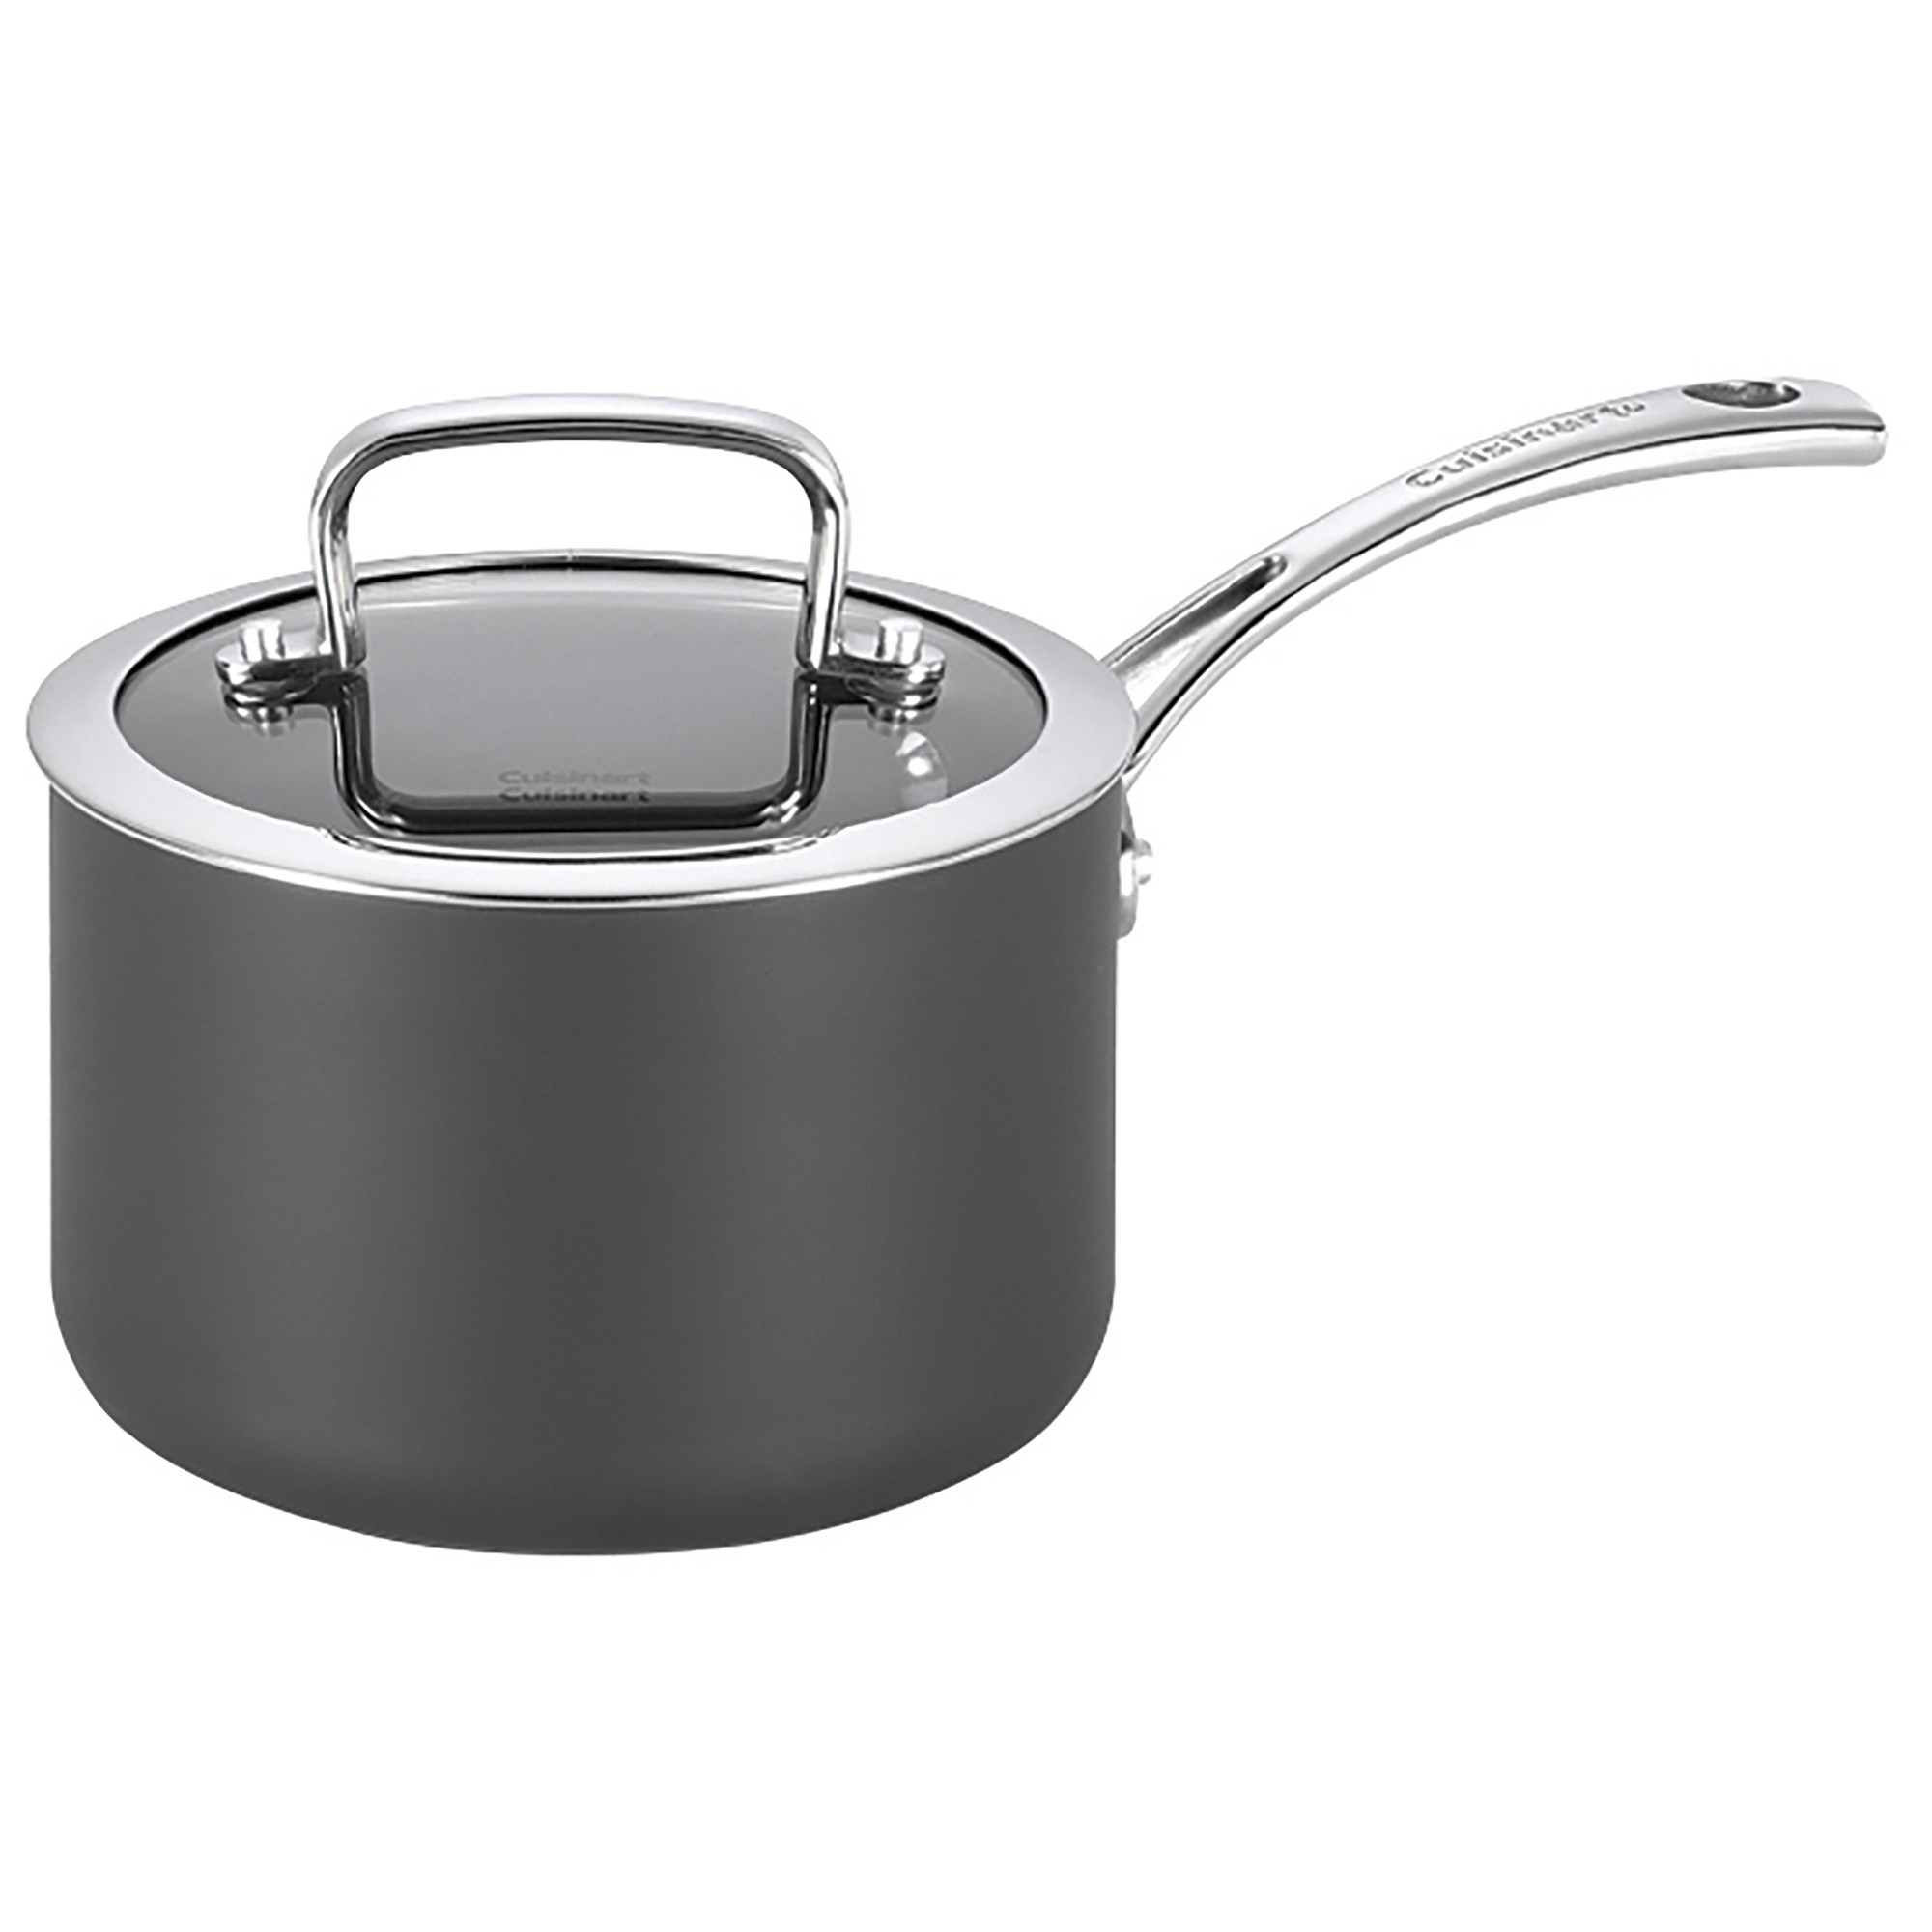 Cuisinart Chef iA+ Non-stick 16cm Saucepan with Lid